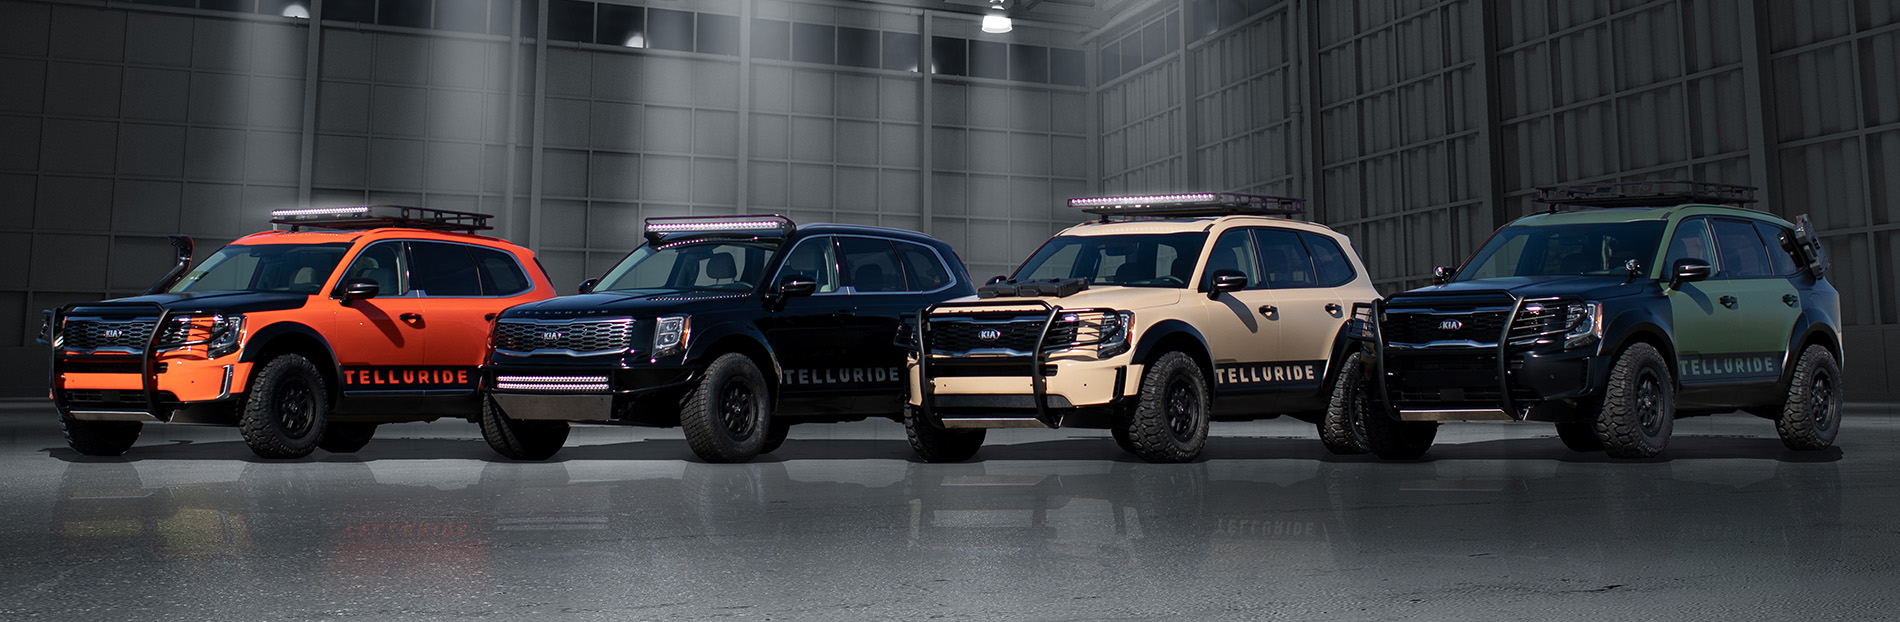 A row of 4 Kia Telluride SUV's in different colors inside a building.